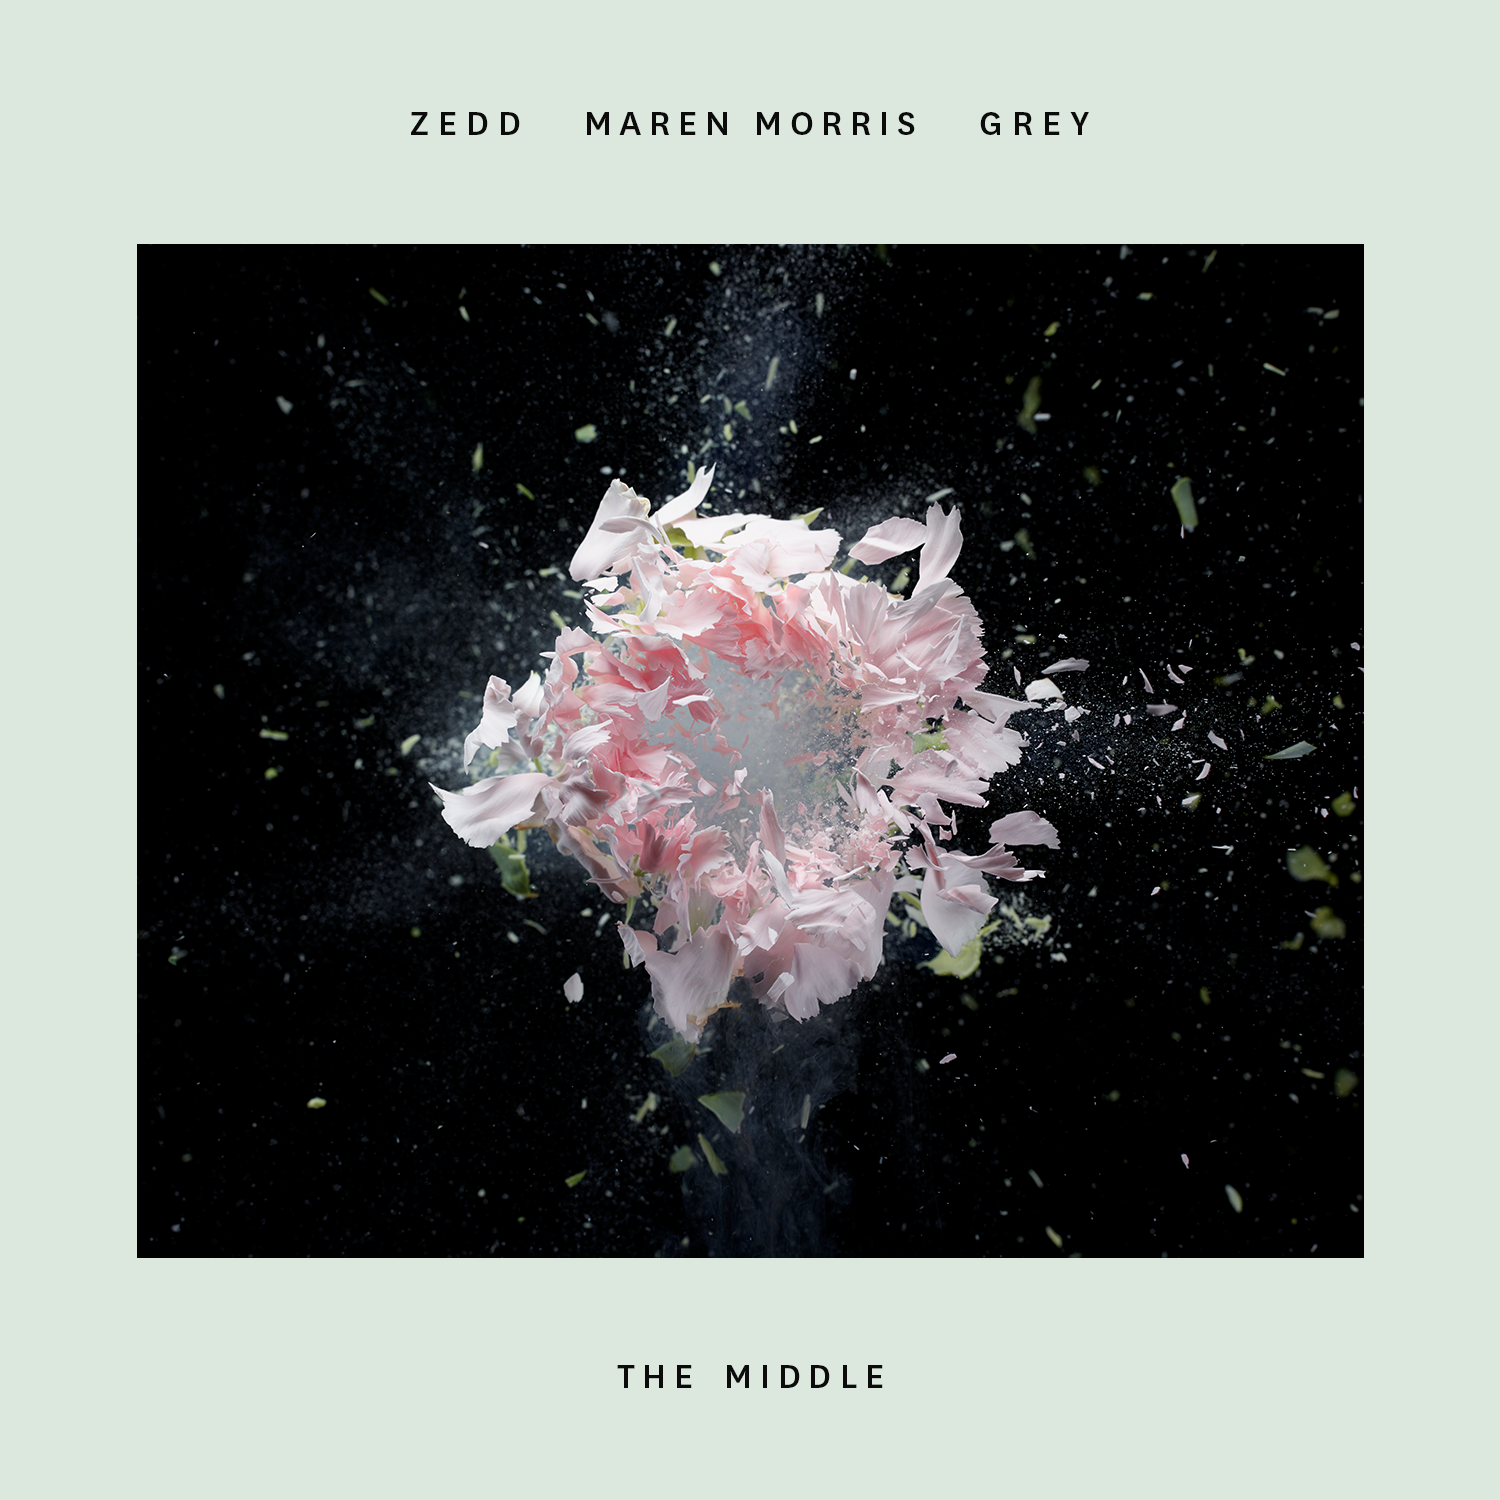 """""""THE MIDDLE"""" W/ @MARENMORRIS & @GREYMUSIC - OUT JANUARY 23!  PRE-SAVE HERE: https://t.co/7tbiVcSPXU https://t.co/xfYuB04G9y"""